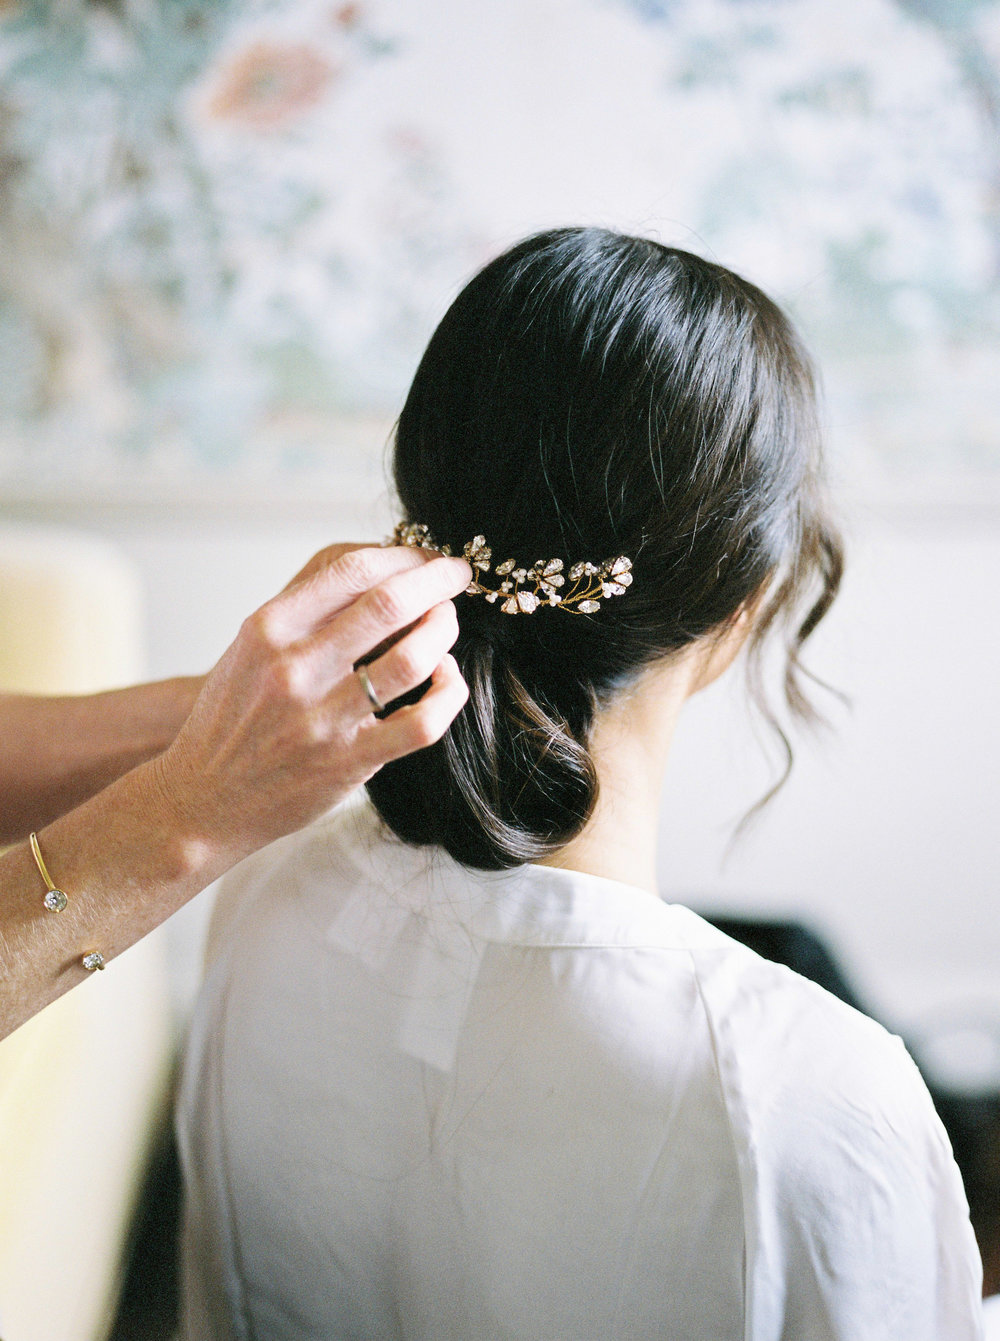 Real bride Sai in bespoke hair accessories and earrings (13).jpg